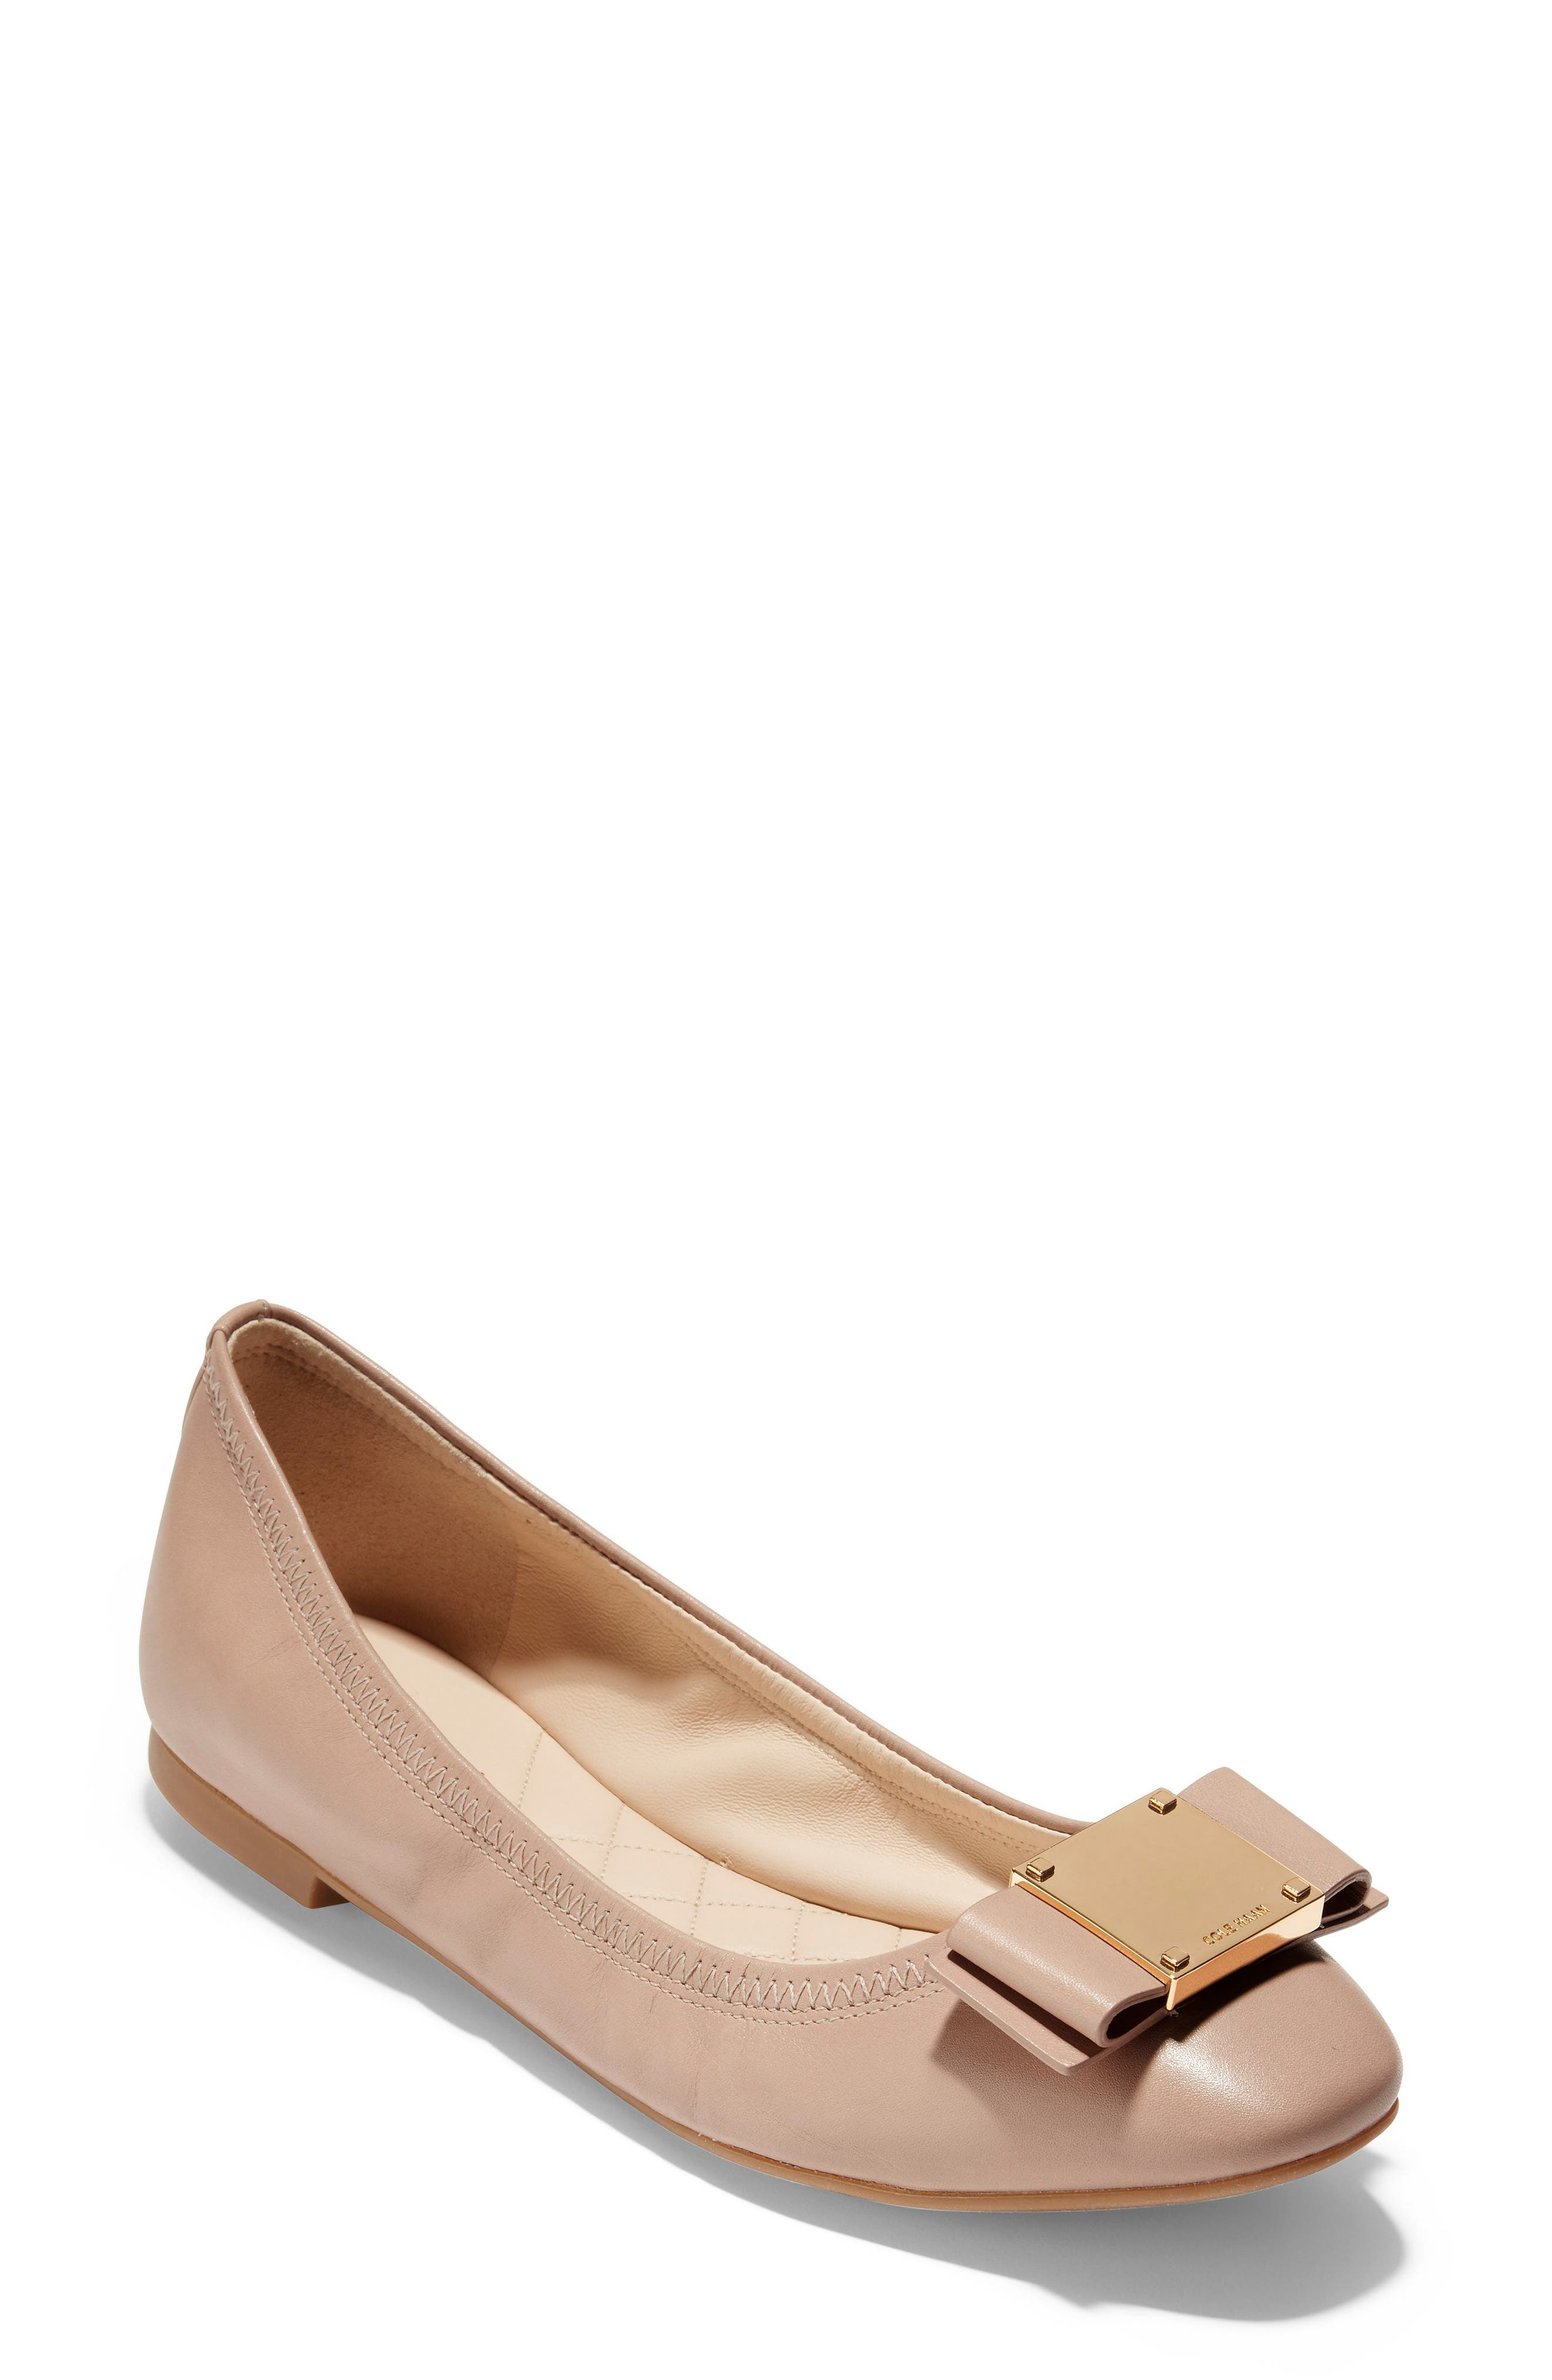 Tali Modern Bow Ballet Flat,                         Main,                         color, Nude Leather